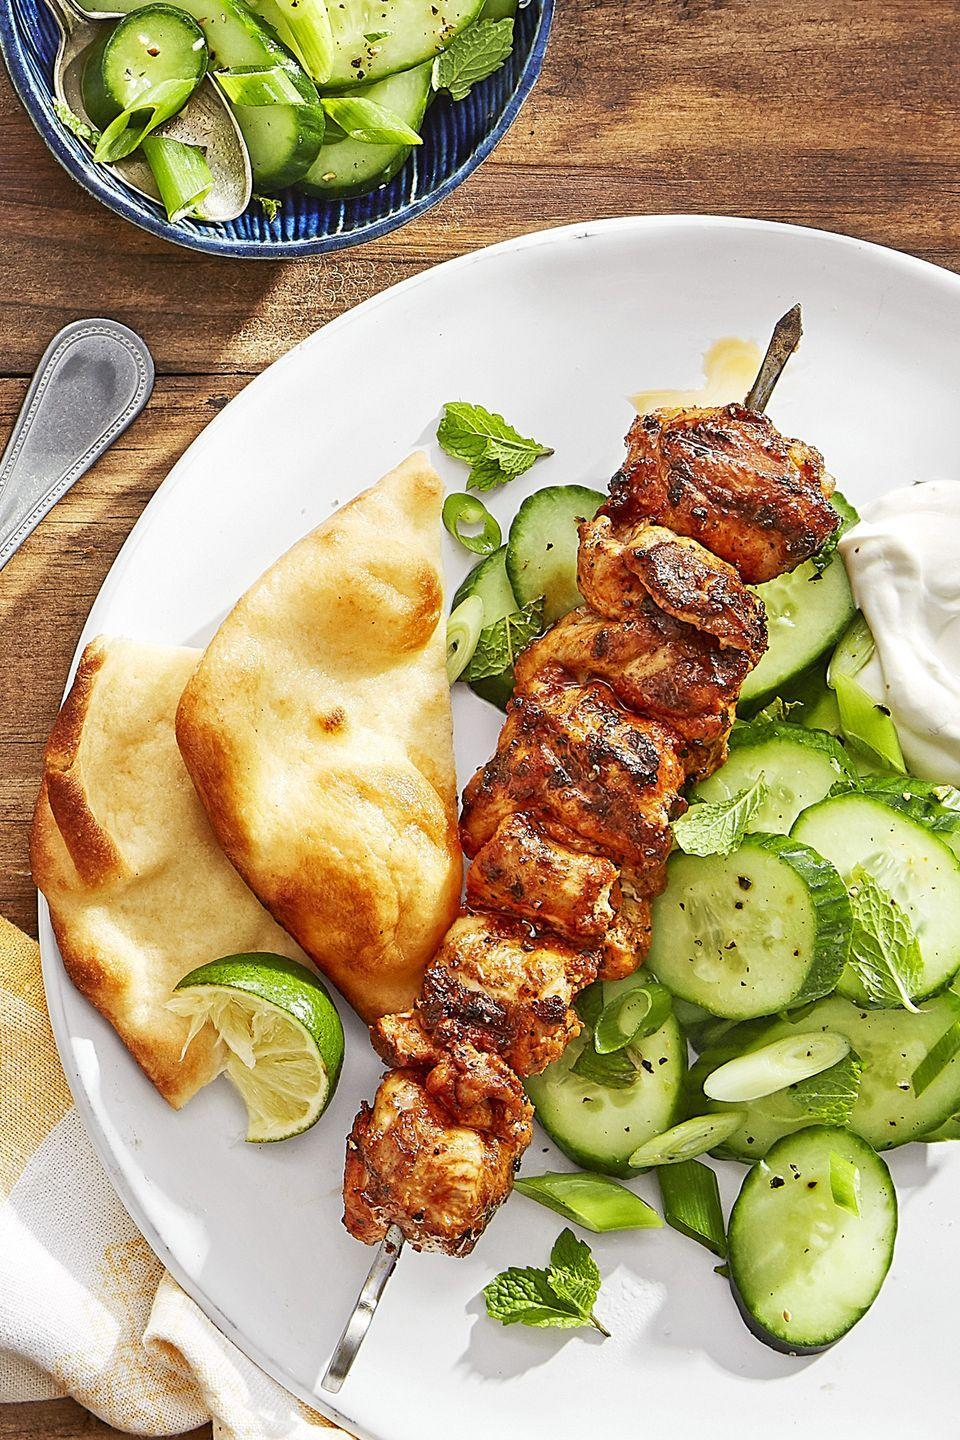 "<p>Cool down Indian-inspired chicken kebabs with a refreshing cucumber and mint salad.</p><p><strong><a href=""https://www.countryliving.com/food-drinks/recipes/a44275/grilled-spiced-chicken-skewers-cucumber-salad-recipe/"" rel=""nofollow noopener"" target=""_blank"" data-ylk=""slk:Get the recipe"" class=""link rapid-noclick-resp"">Get the recipe</a>.</strong></p>"